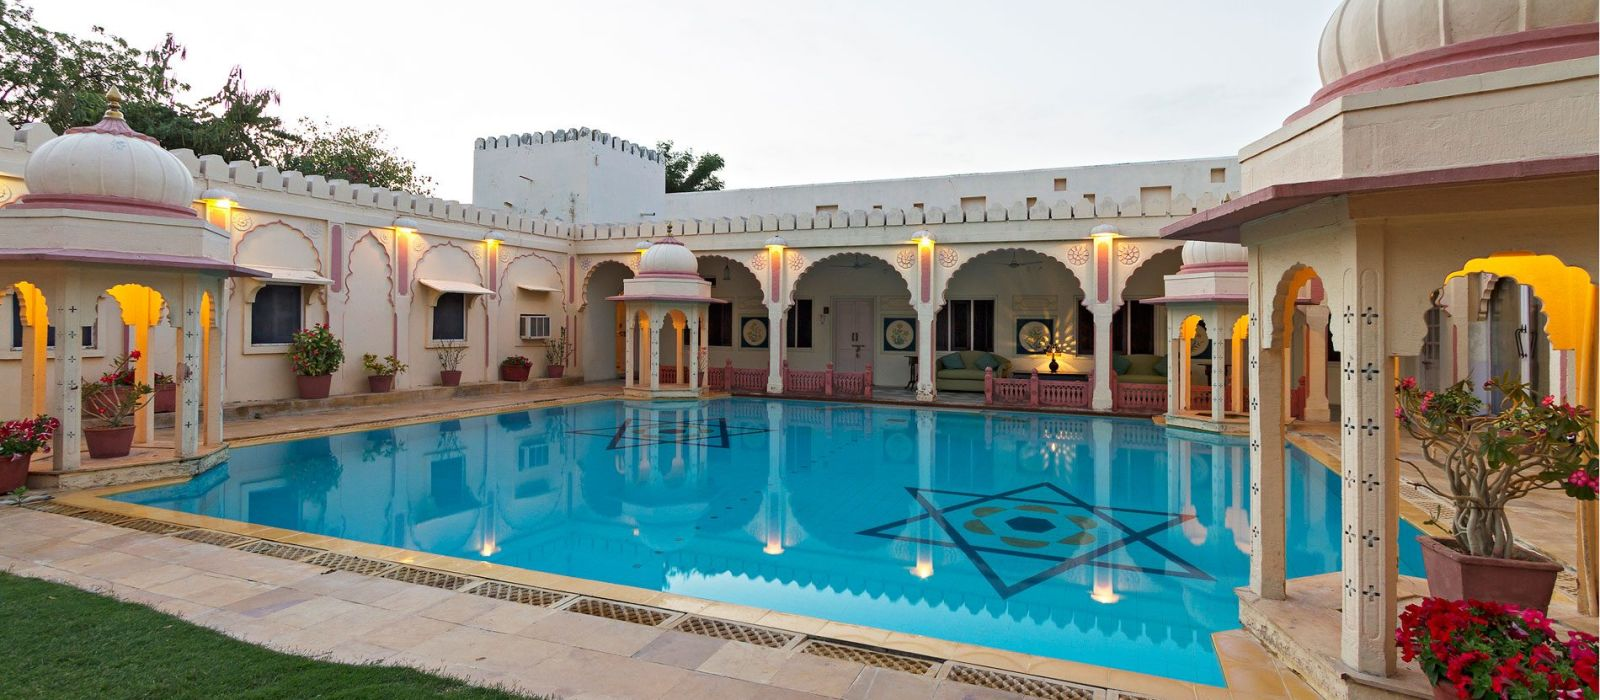 Hotel Rohet Garh North India